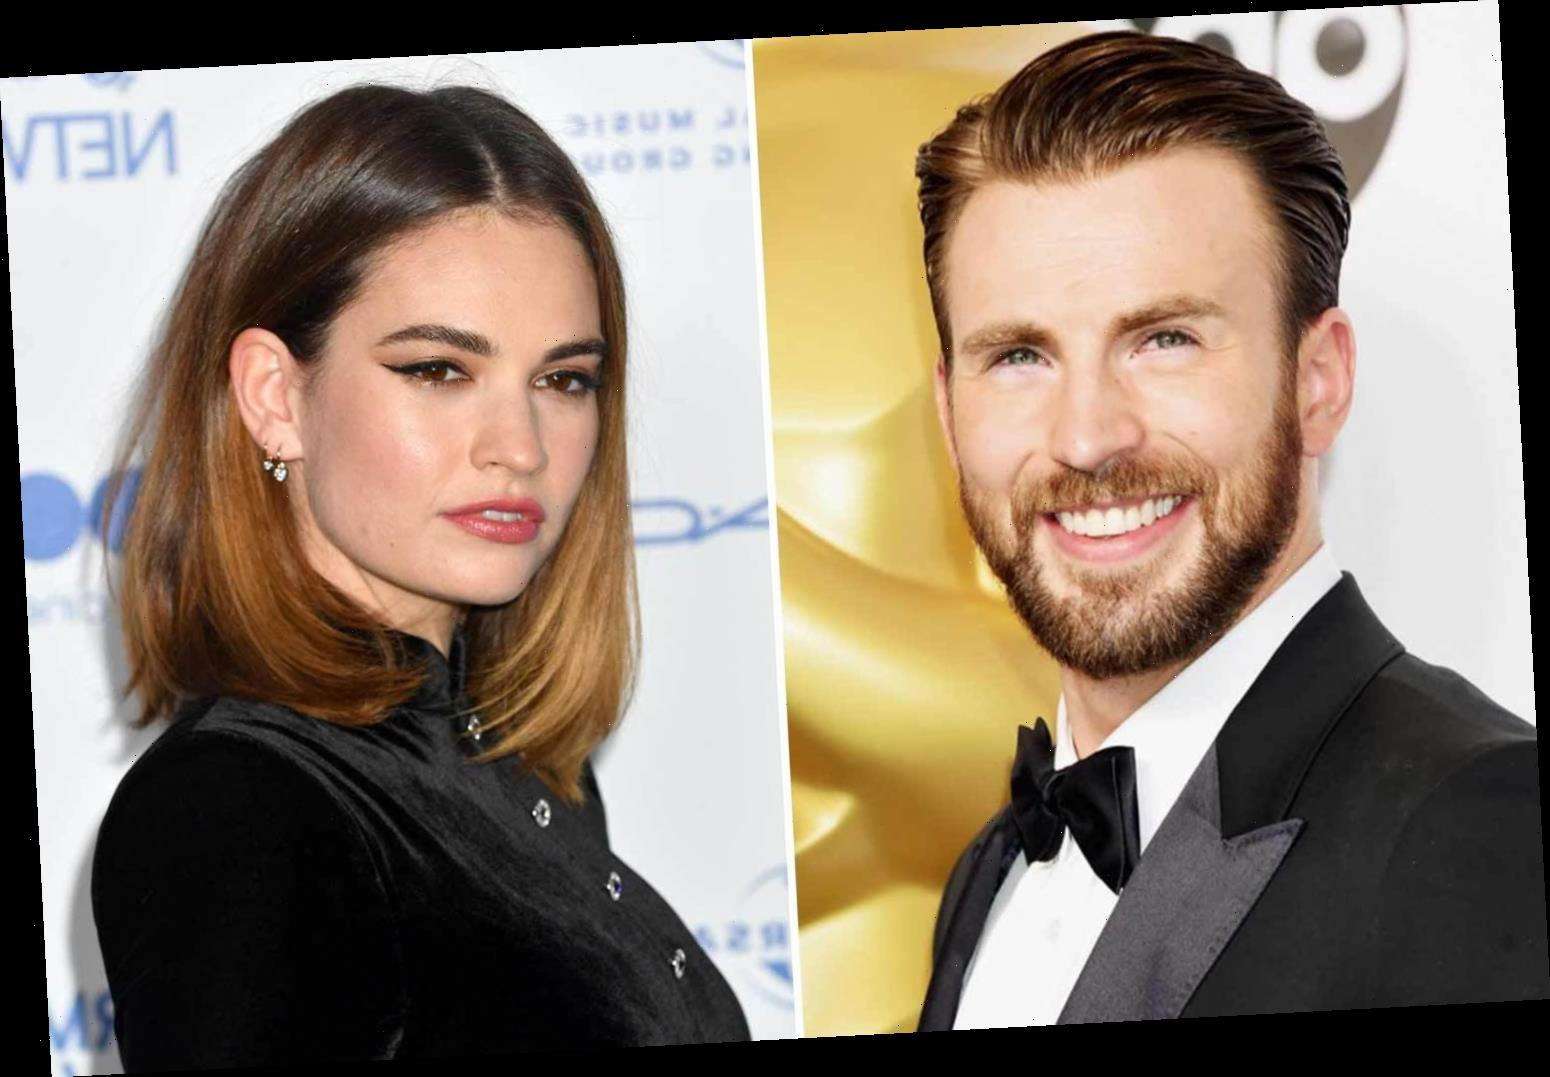 What did Lily James say about dating Chris Evans?